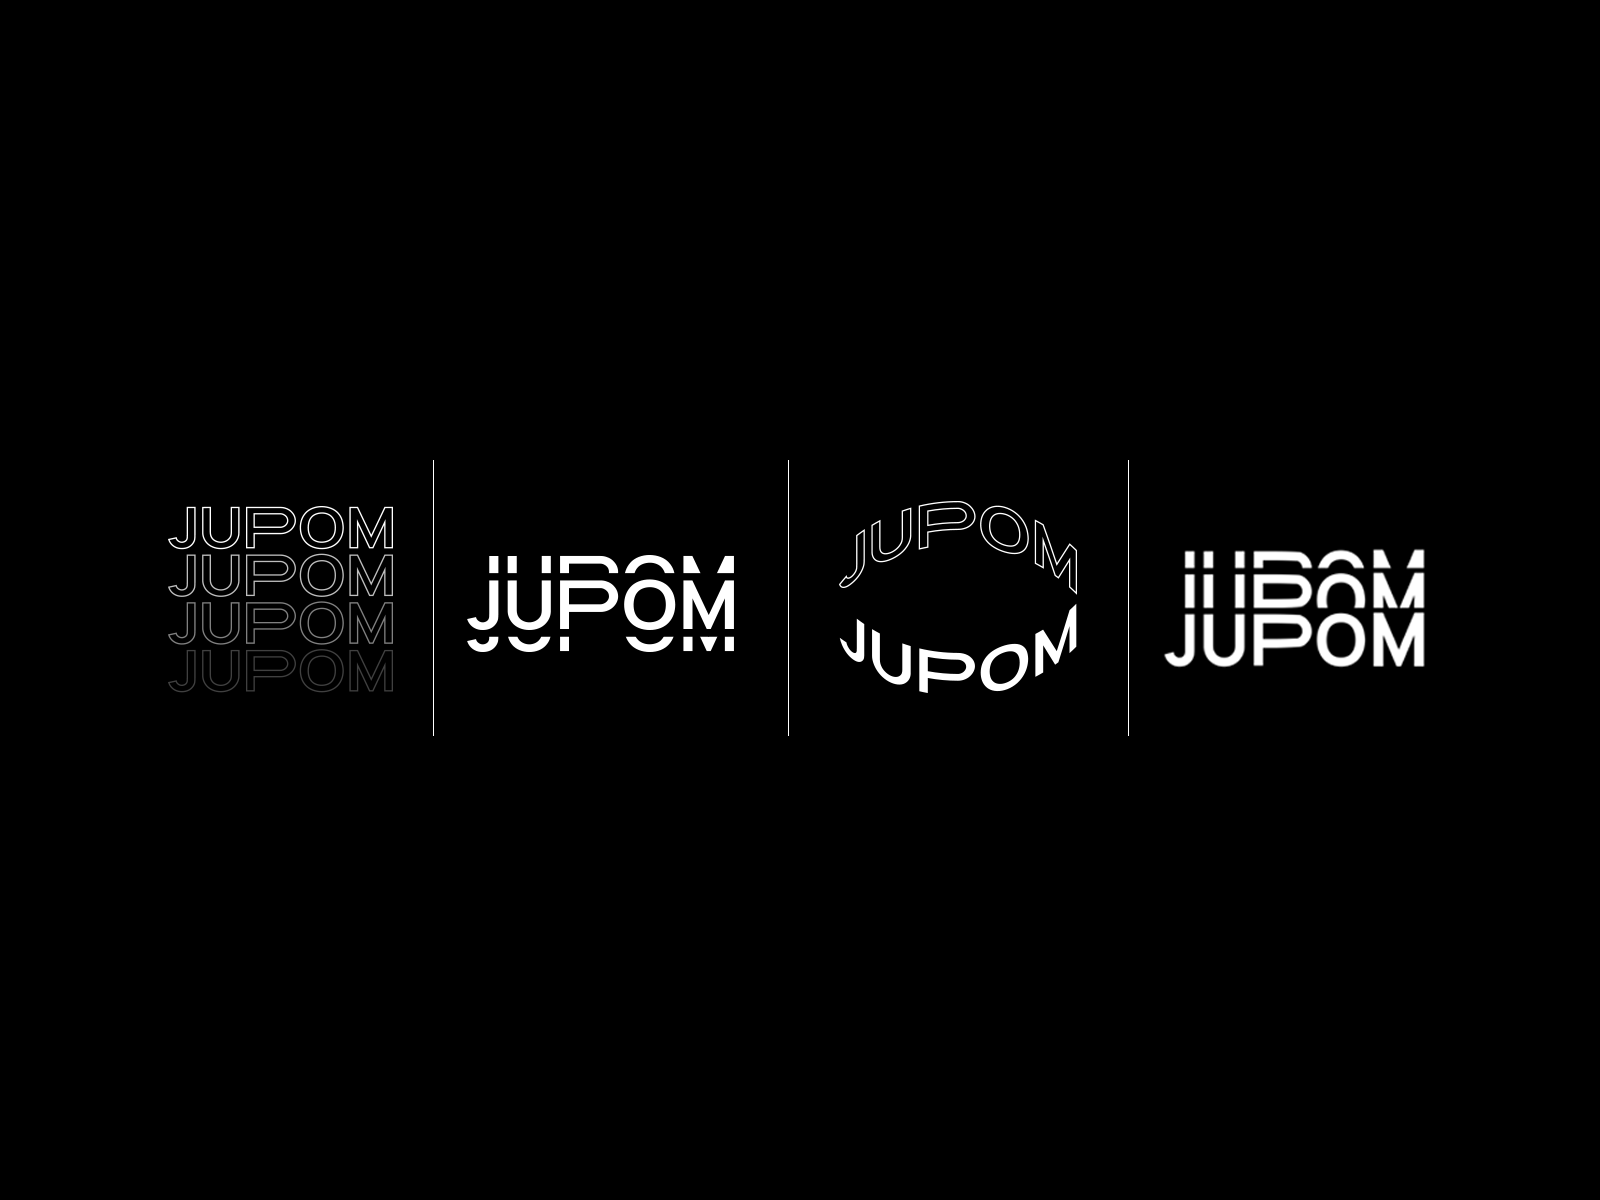 Jupom | dj logo suggestions